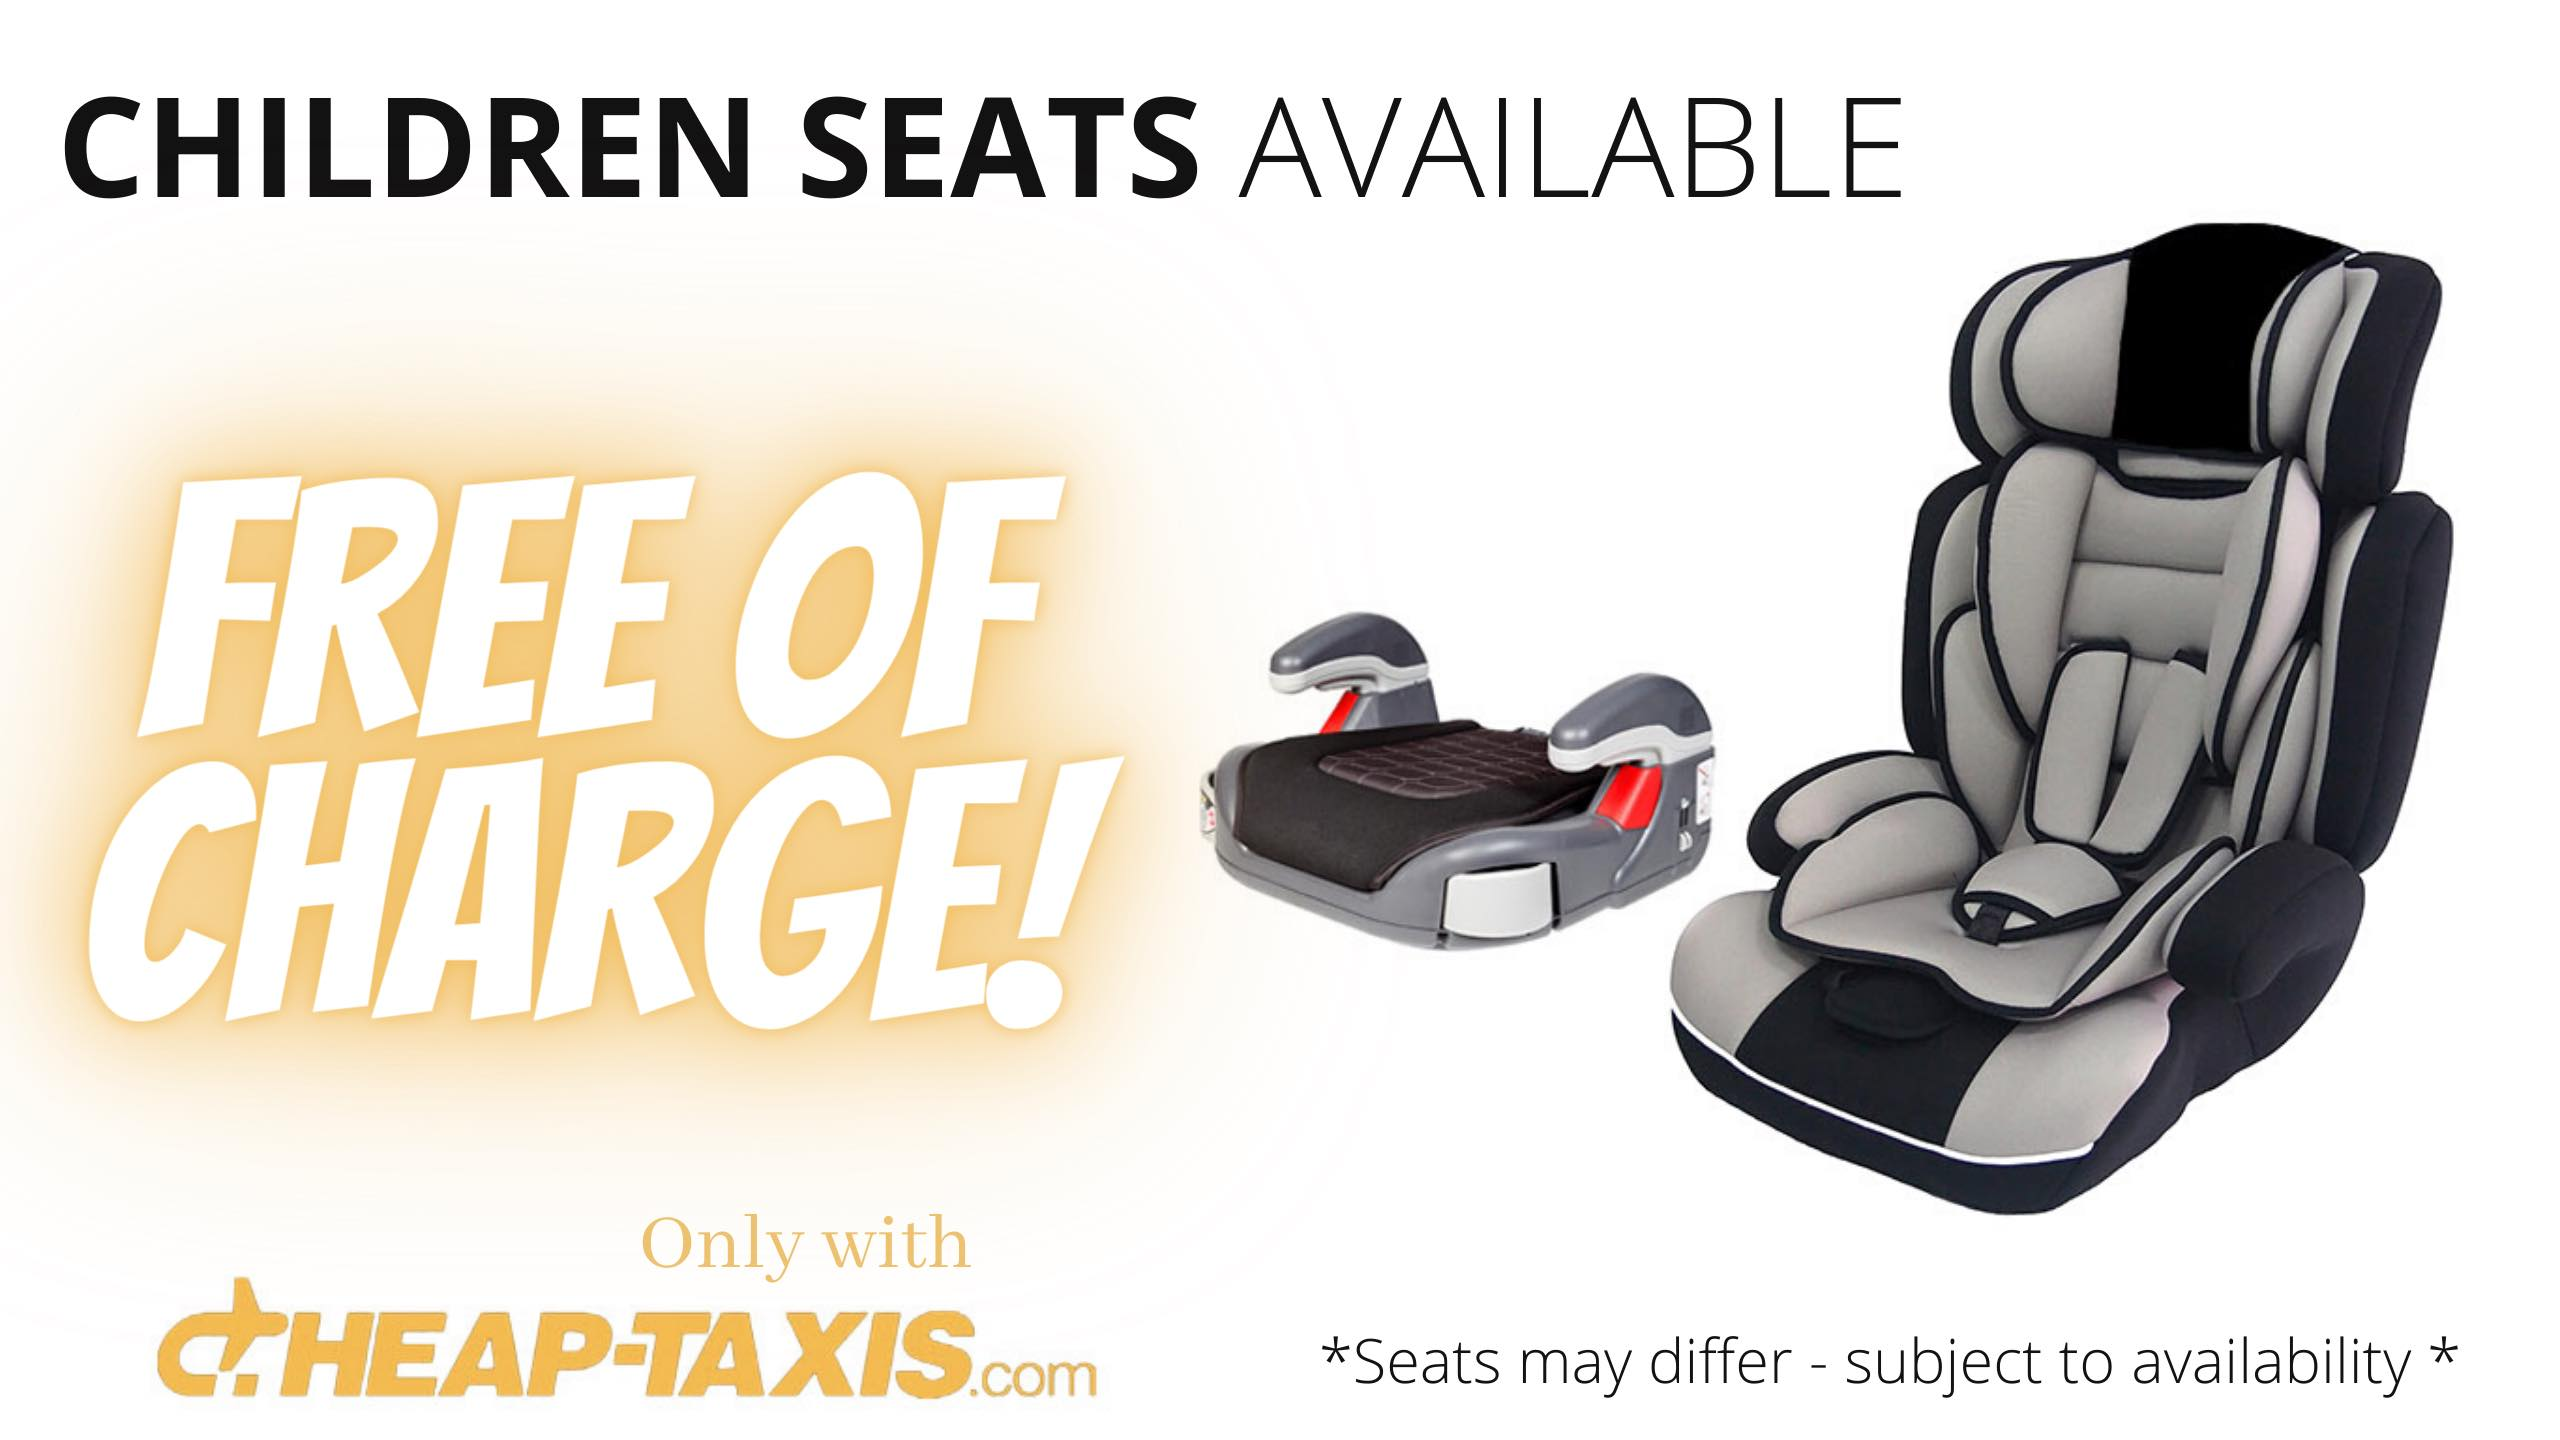 child seats are offers free of charge